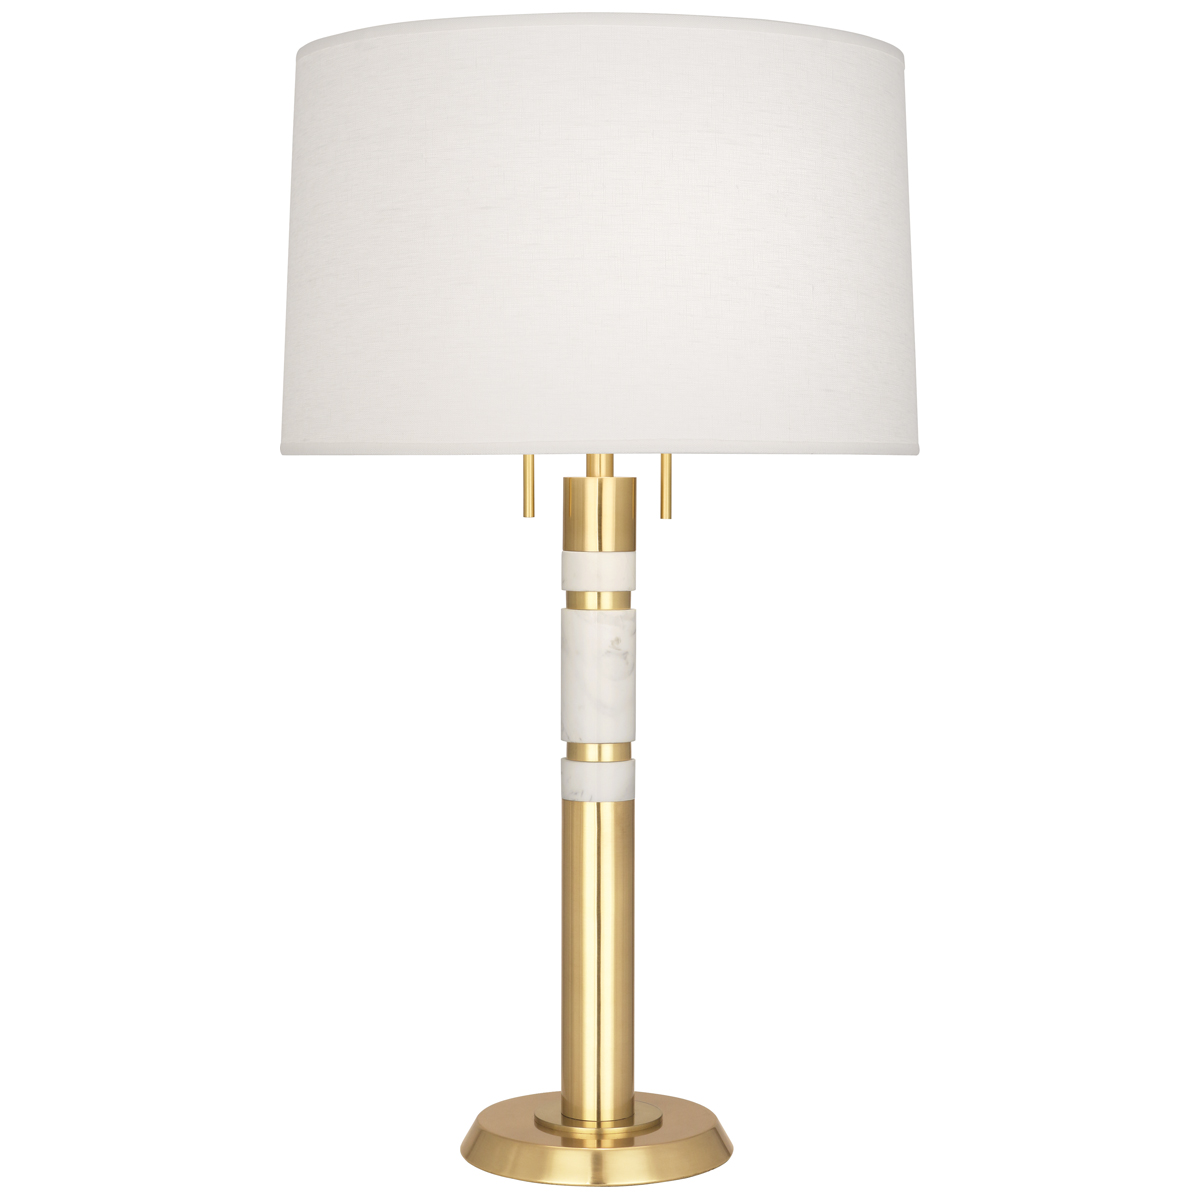 Hudson Table Lamp Style #215